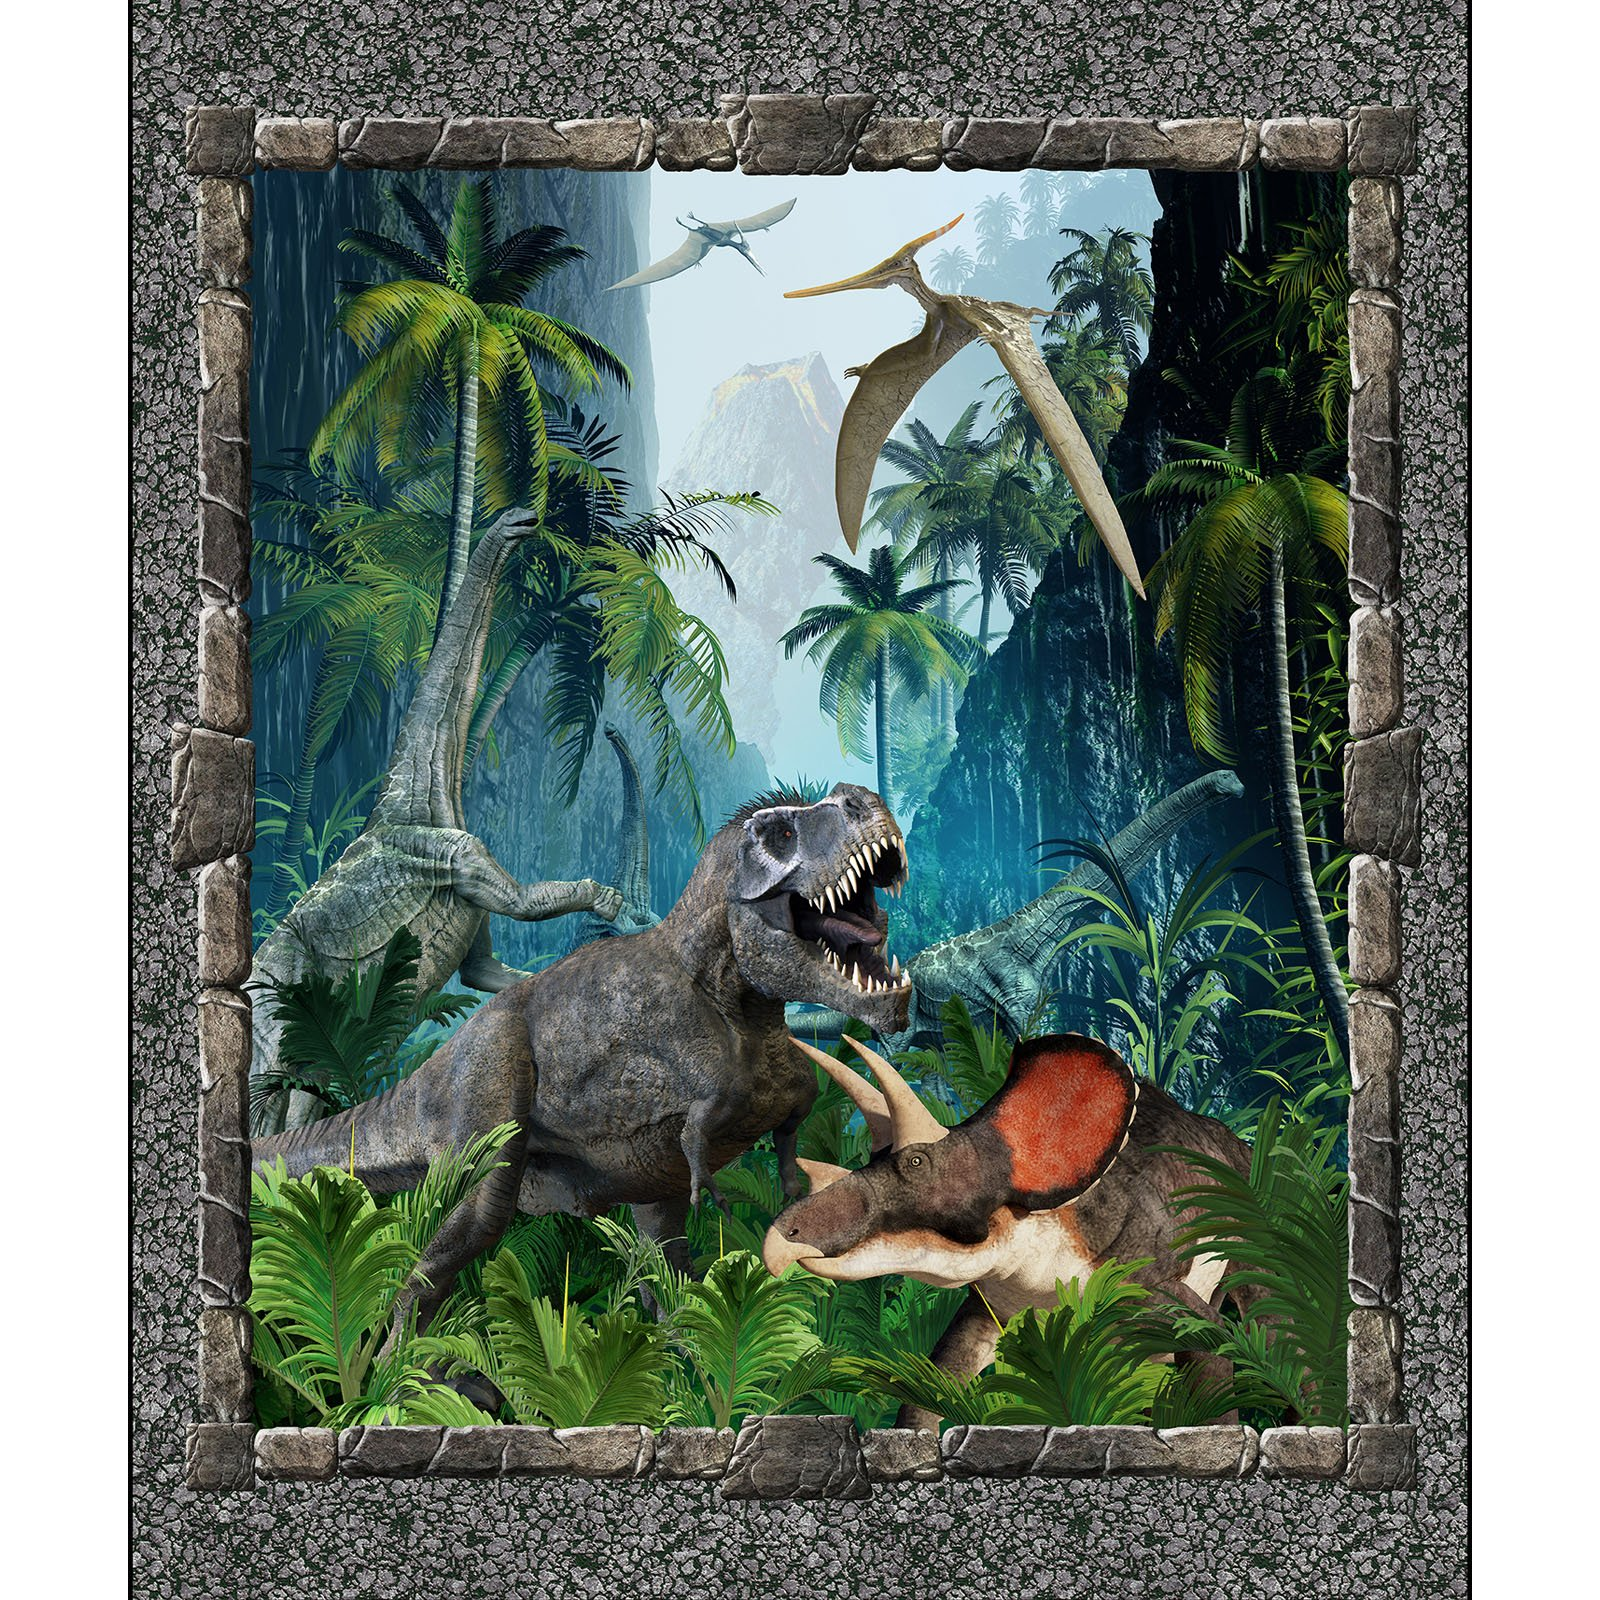 INTH-1JUR 1 - JURASSIC BY IN THE BEGINNING DINOSAUR LARGE PANEL MULTI